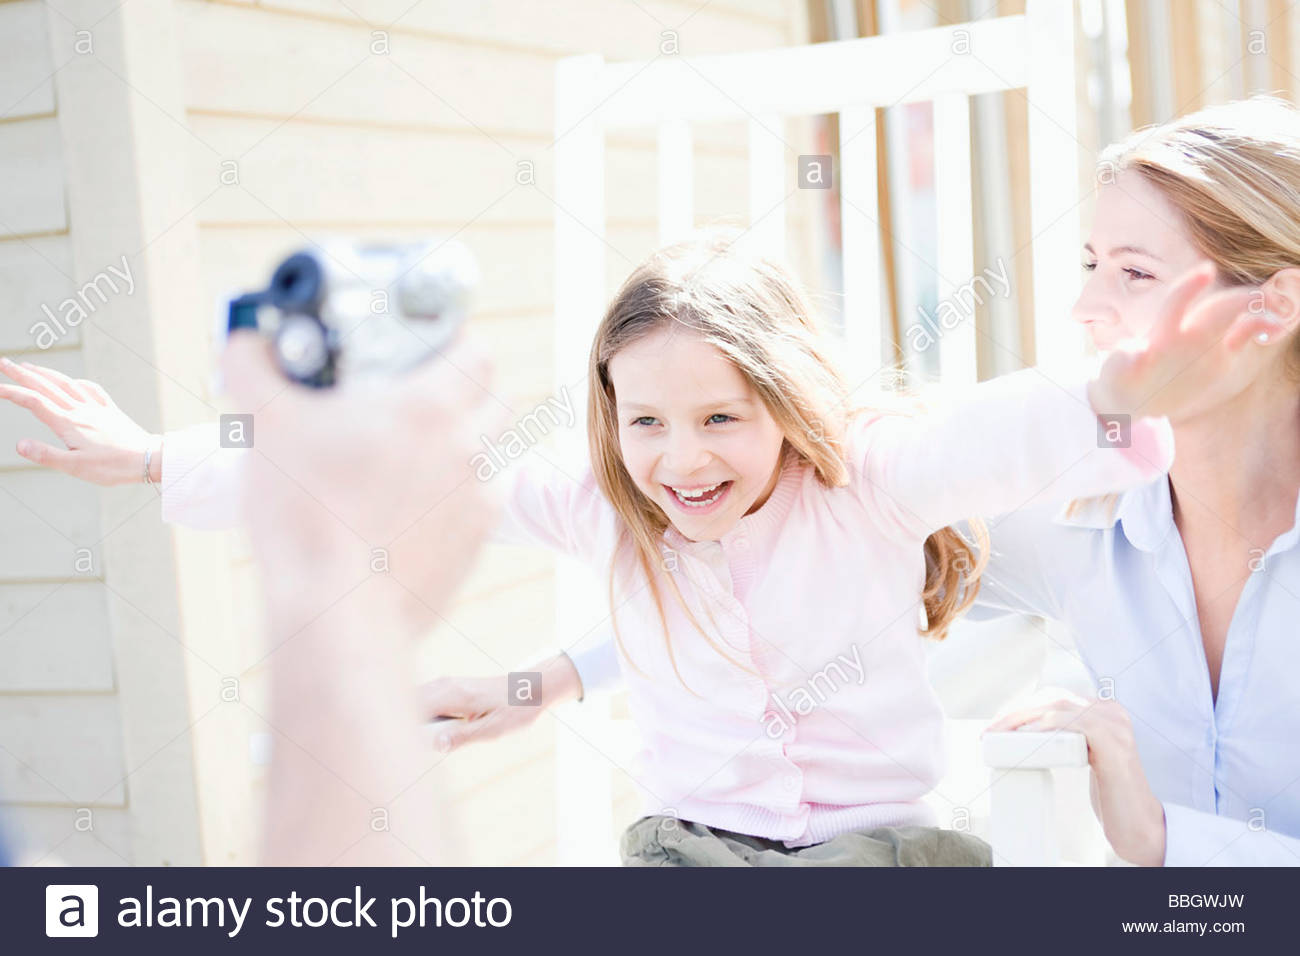 Mother and daughter being video taped - Stock Image